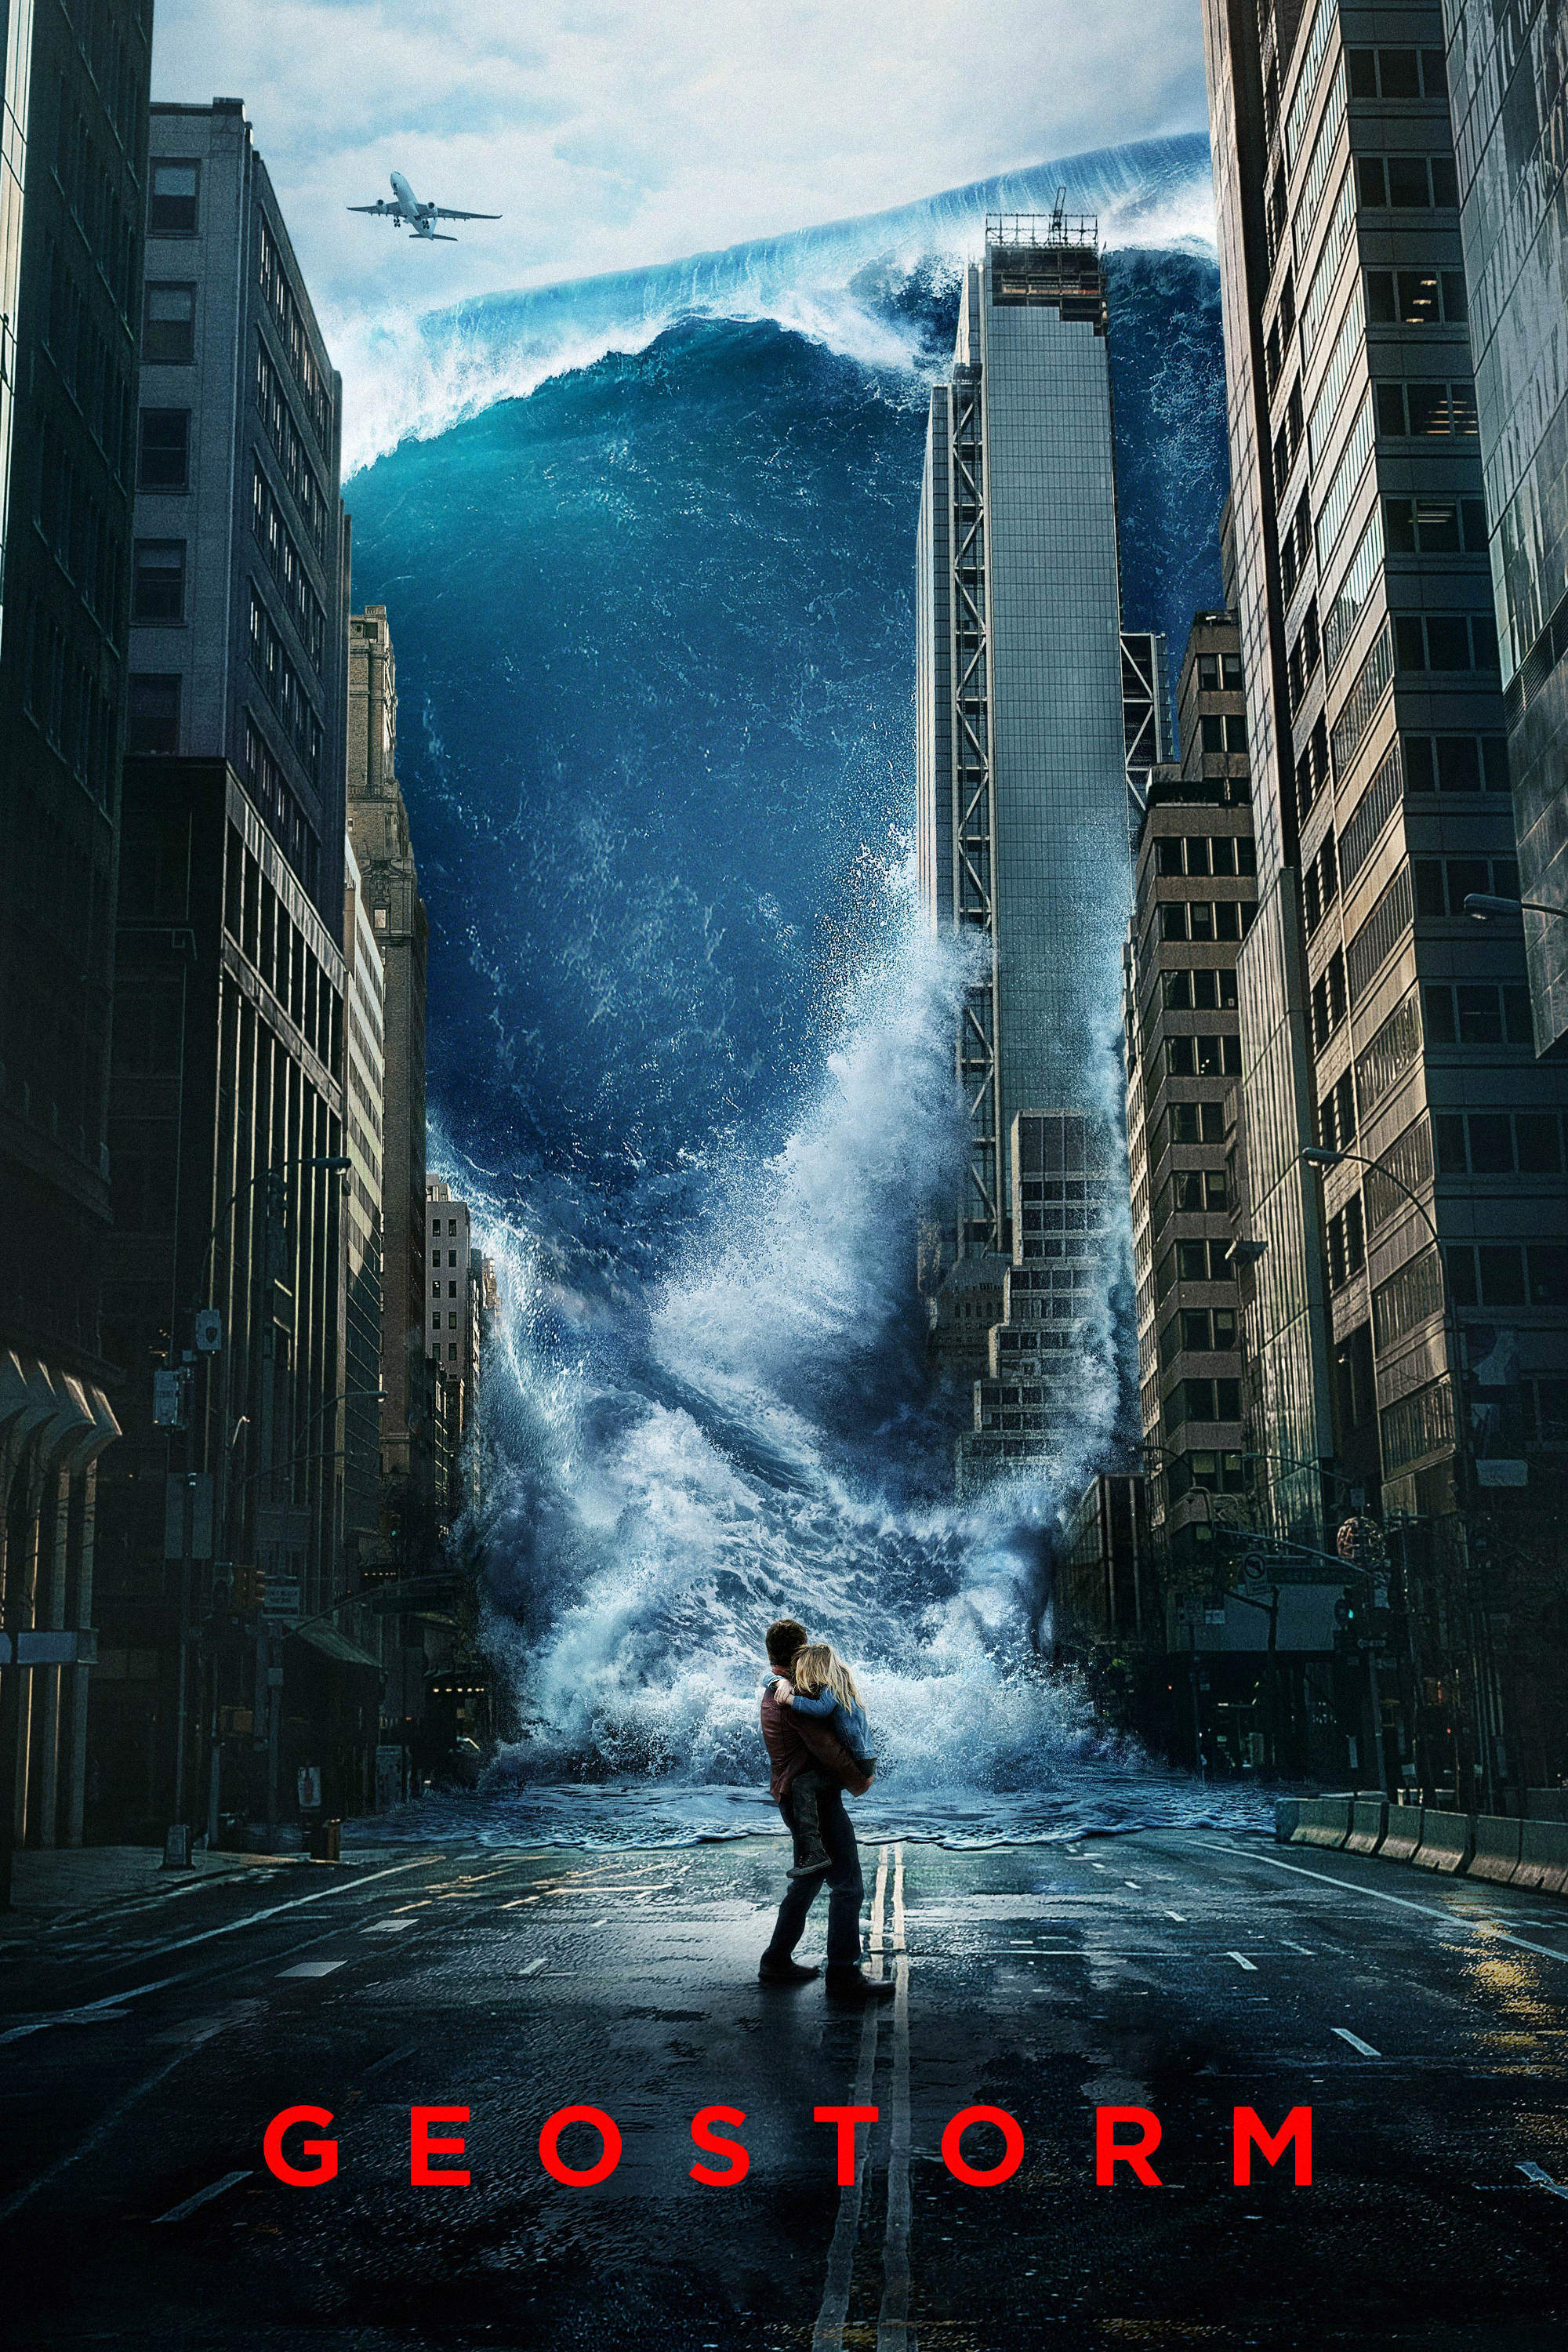 Geostorm: Not too bad actually.